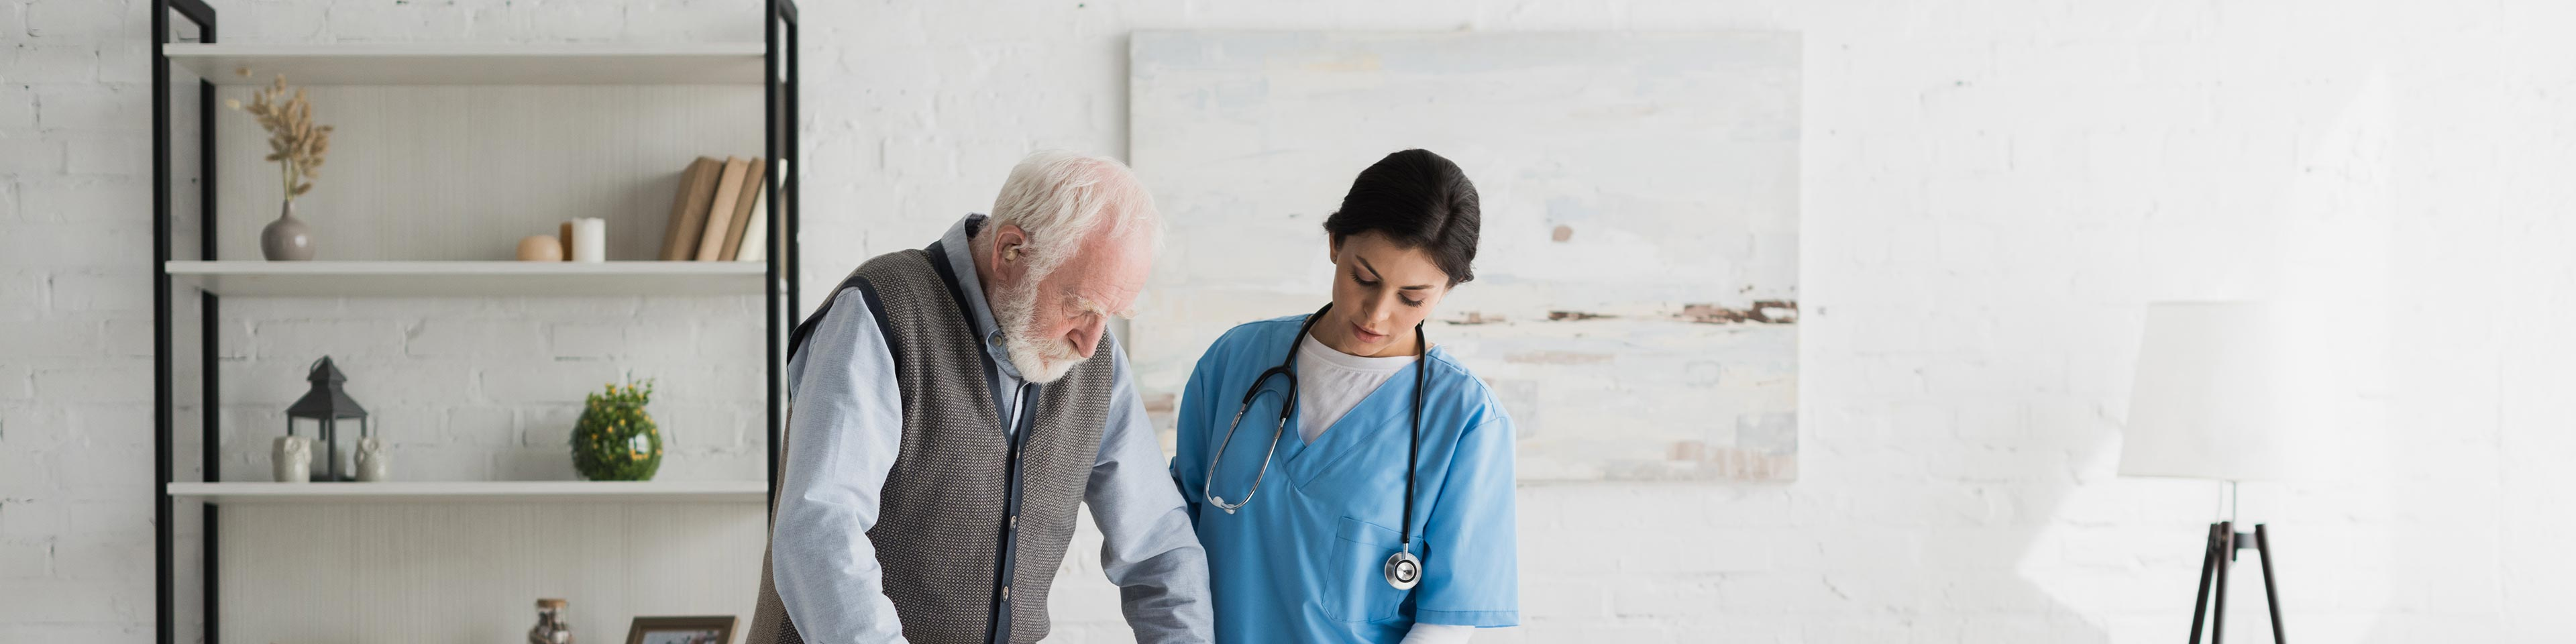 M&A in the home healthcare sector: 6 considerations for dealmakers